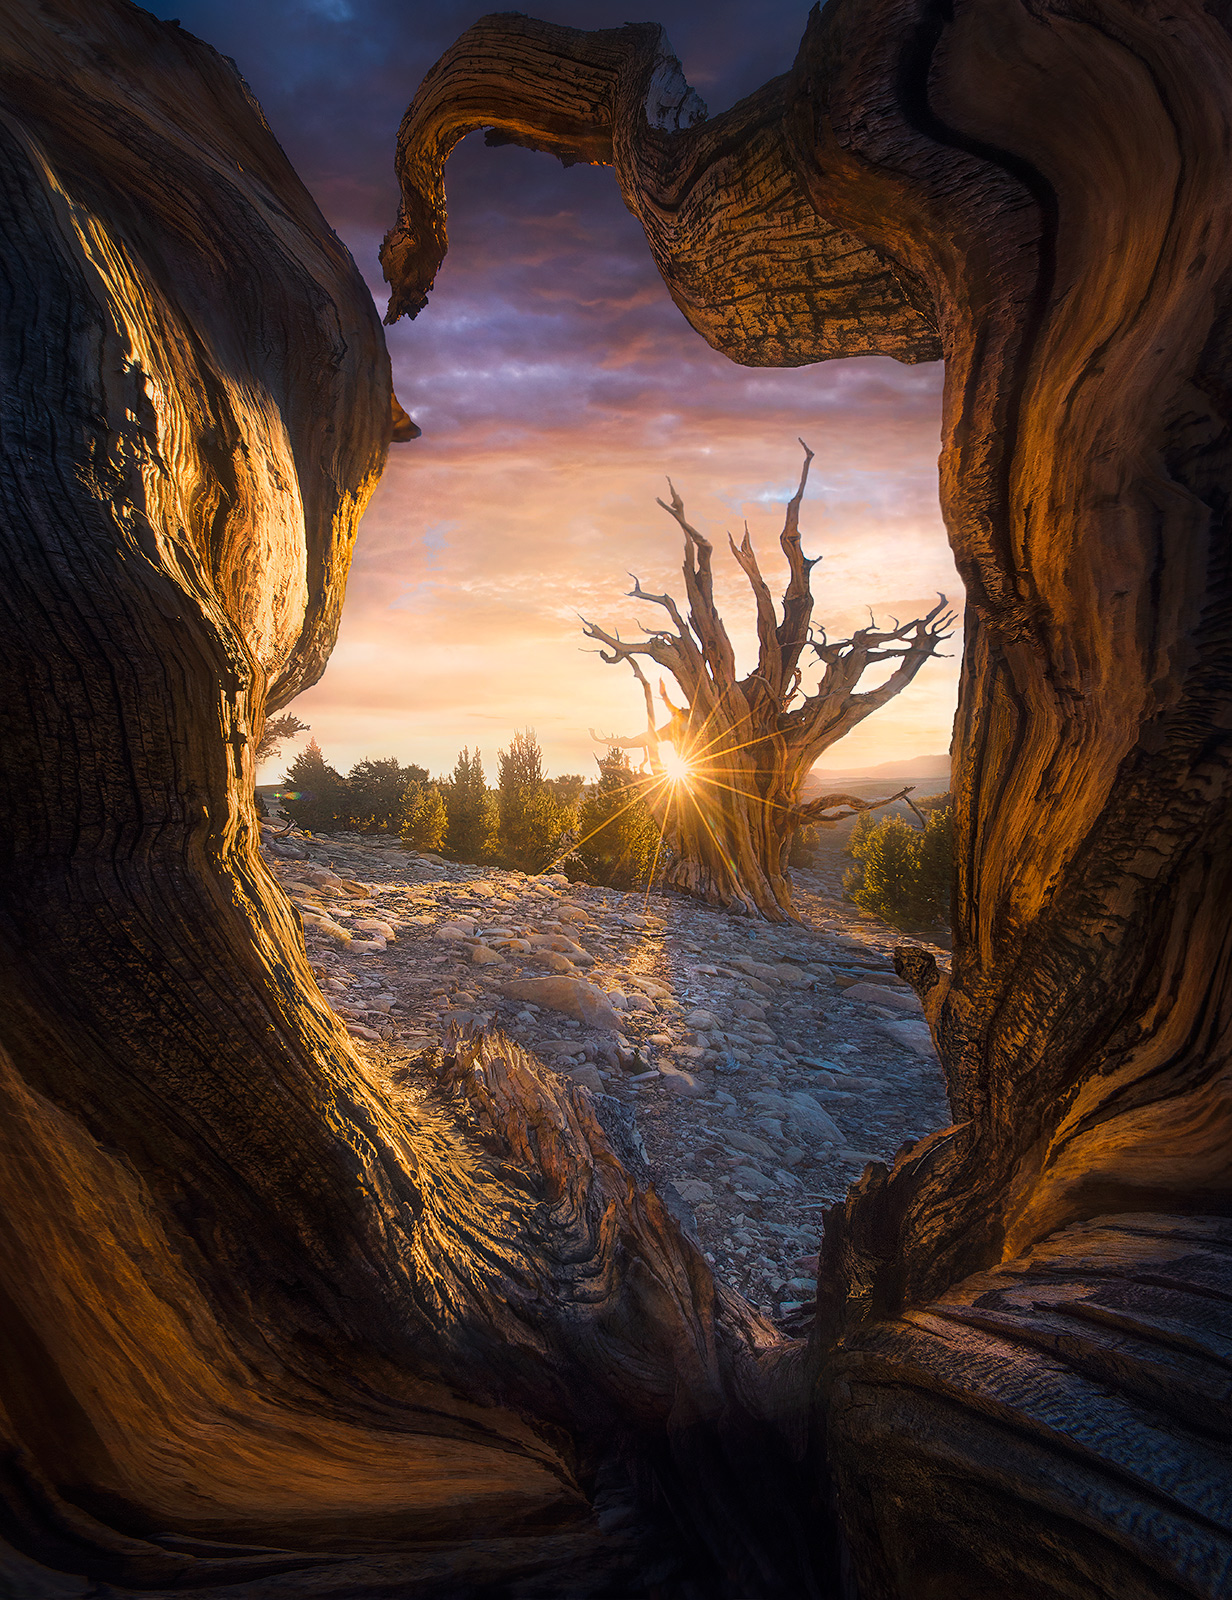 white mountains, bristlecones, pine, old, ancient, tree, gnarled, bark, wood, california, marc adamus, unique, sunset, photo